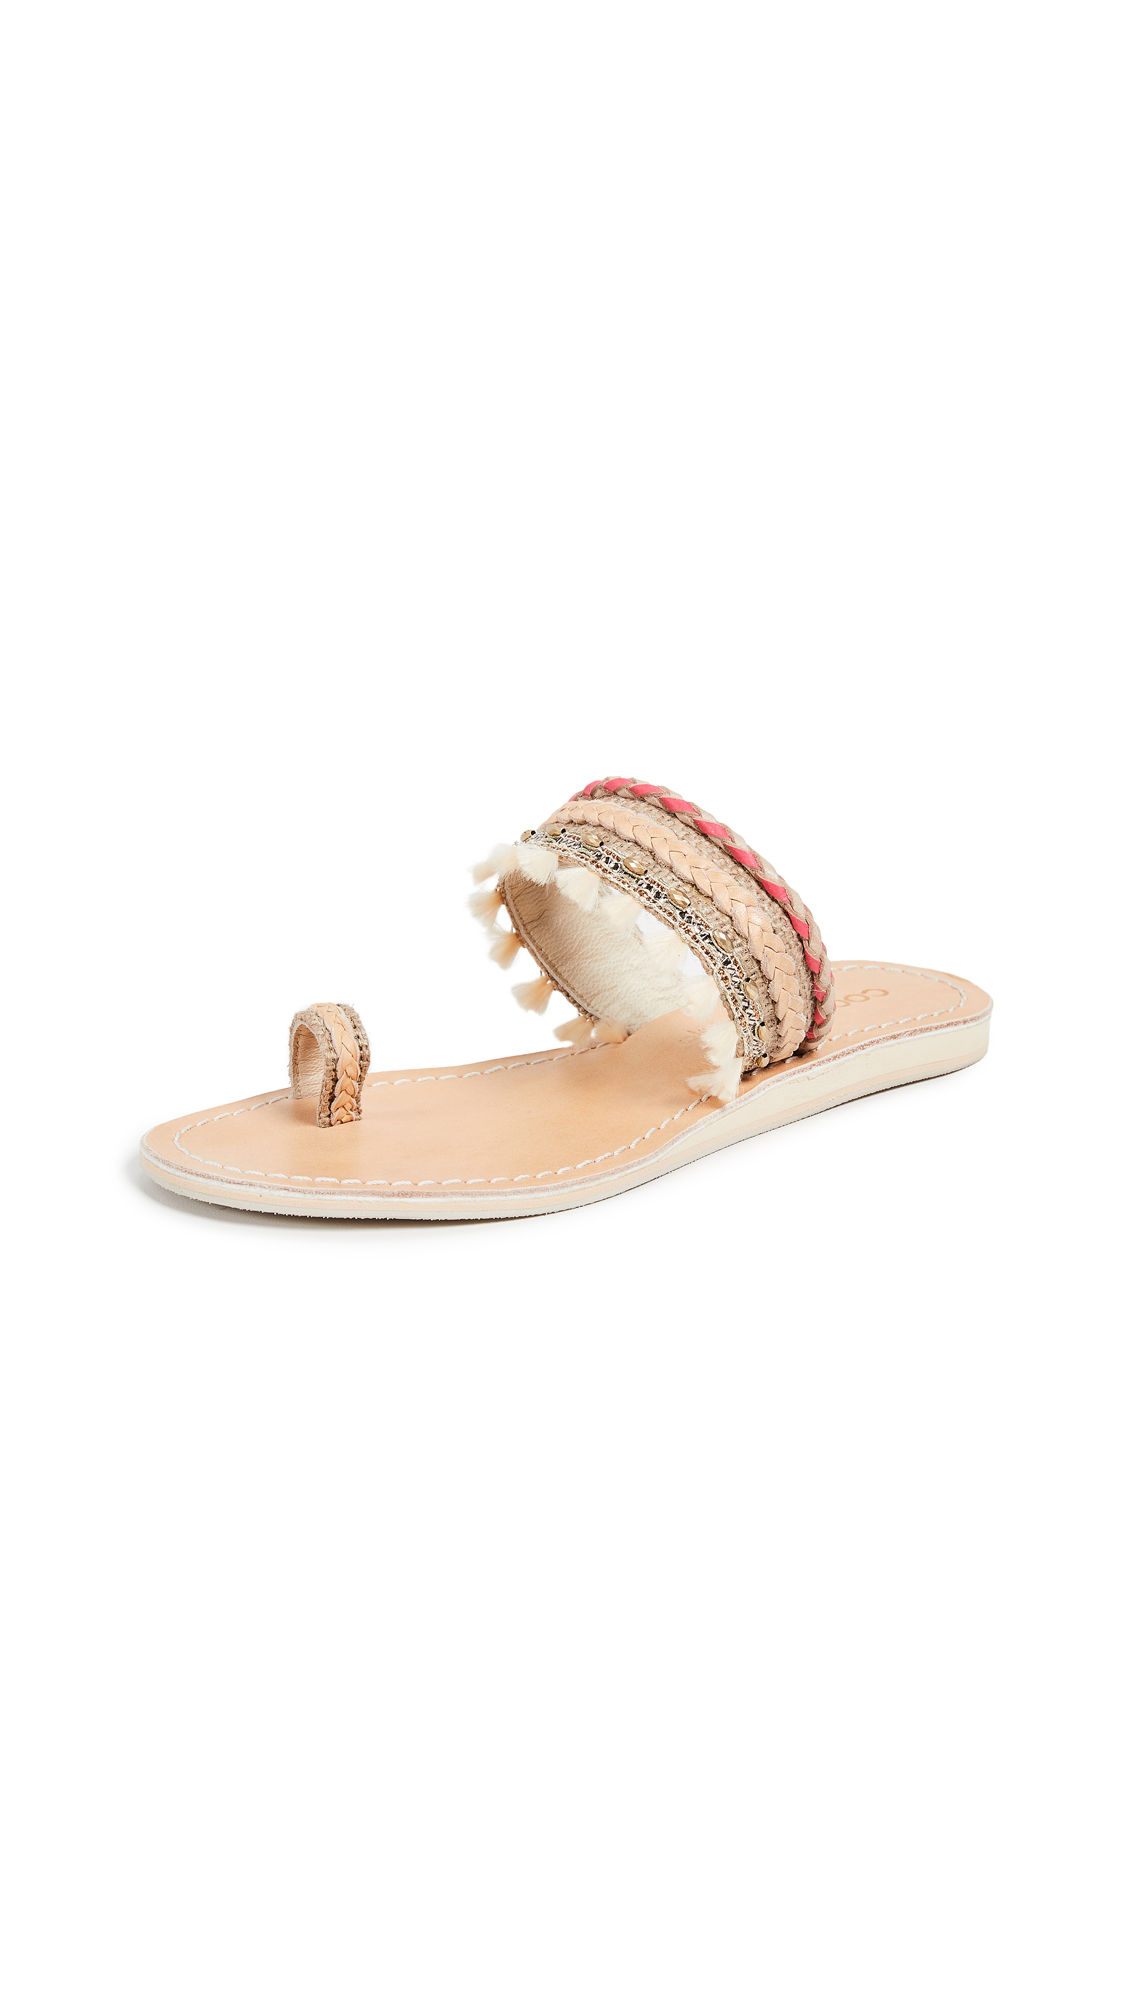 Cocobelle Mahal Toe Ring Sandals - Hot Coral